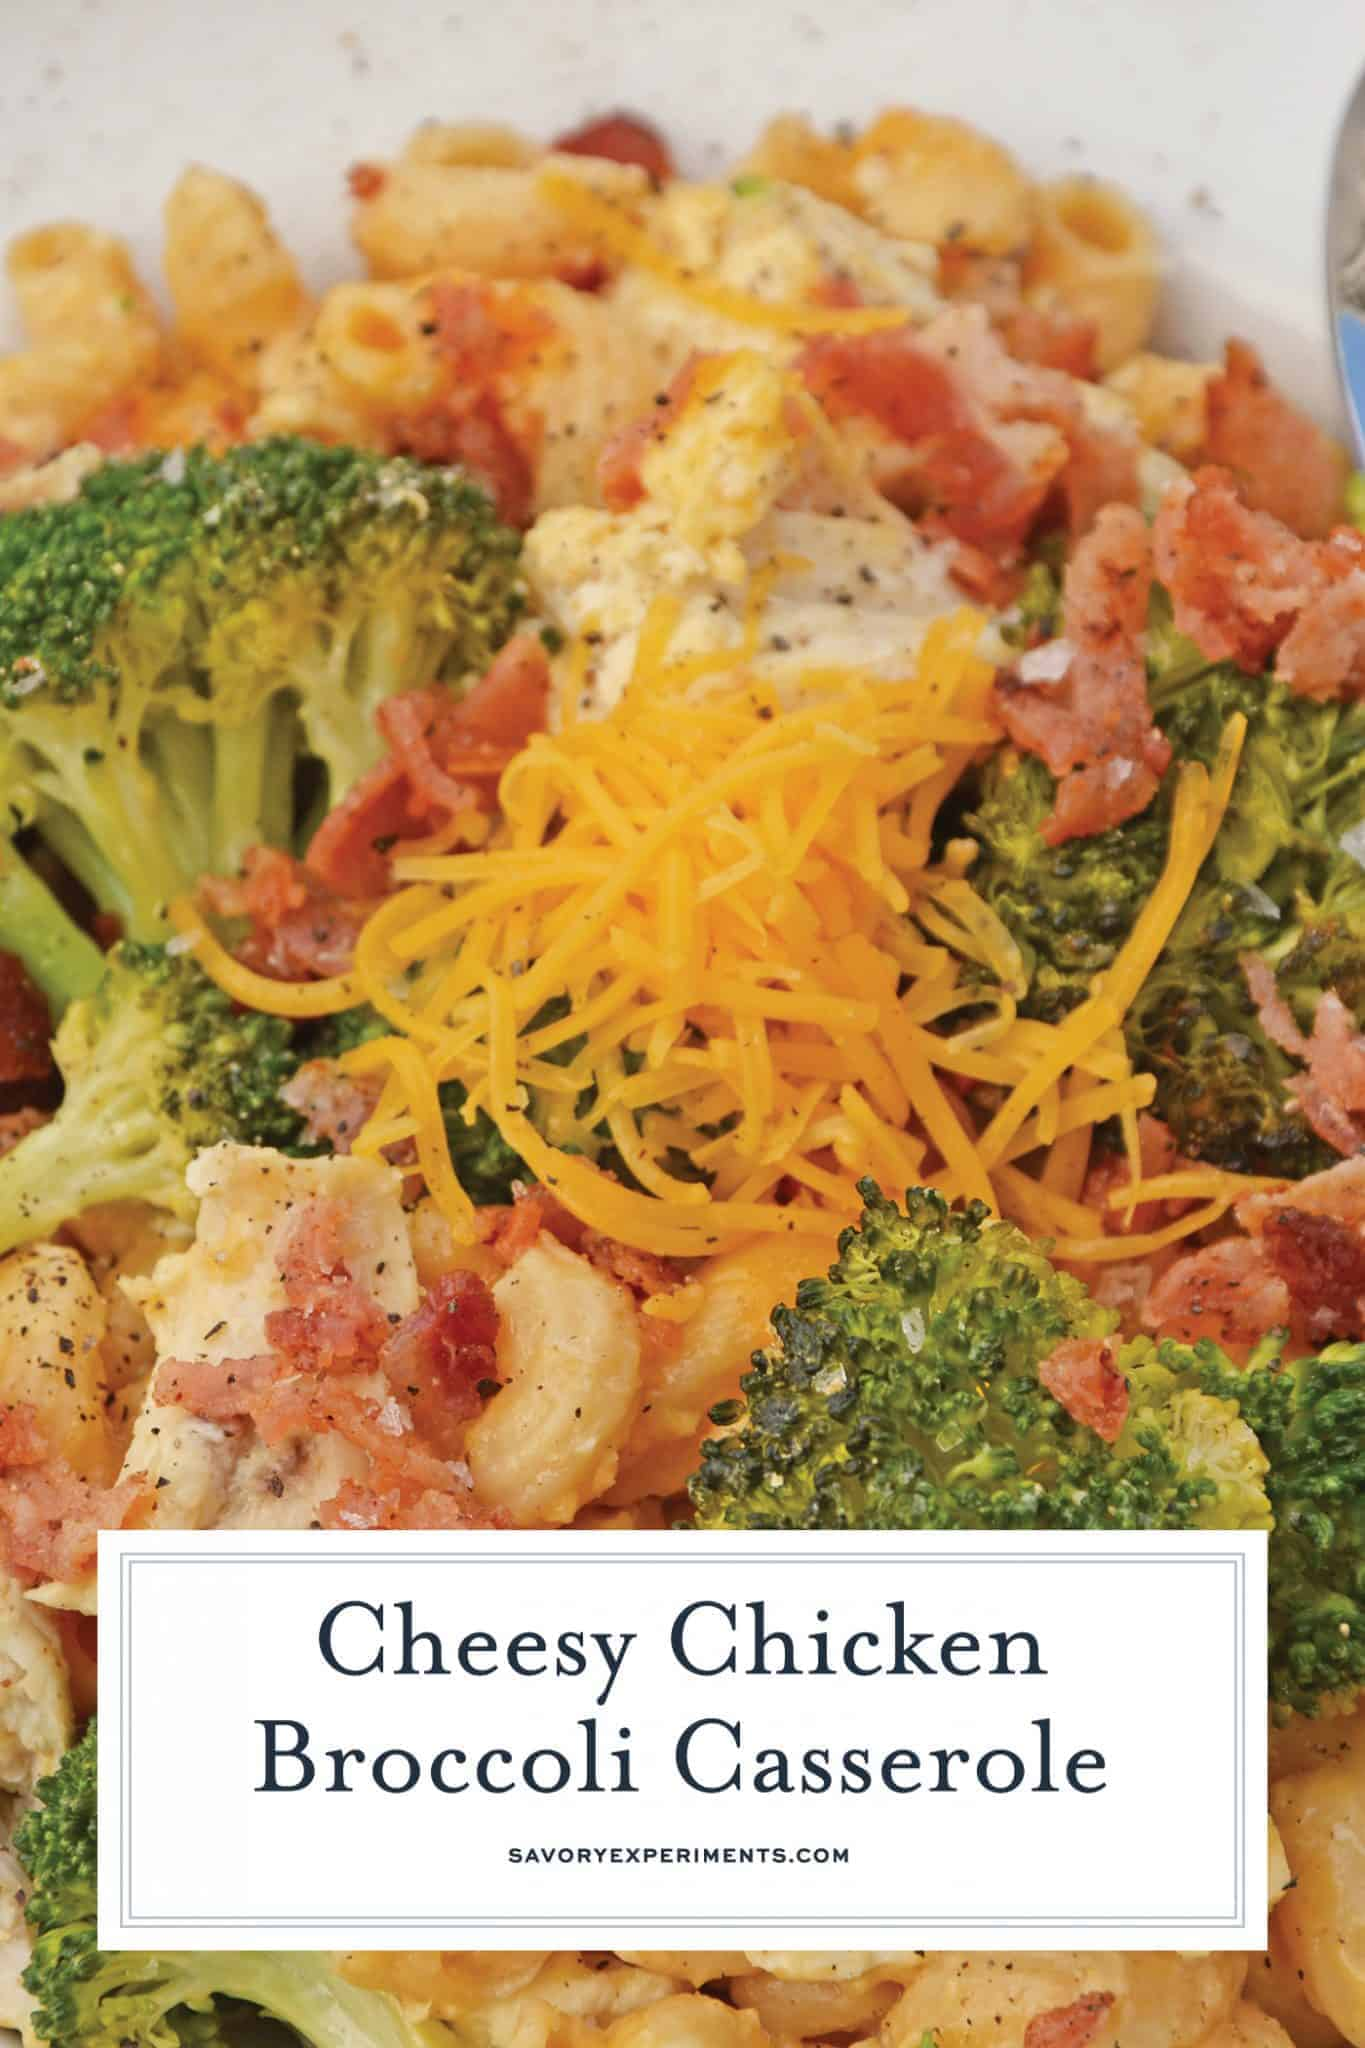 This Chicken Broccoli Casserole will be your new go-to easy dinner! Using leftover baked mac and cheese, this will be a meal you will make again and again! #chickencasserole #broccolicasserole #chickencasserolerecipes www.savoryexperiments.com